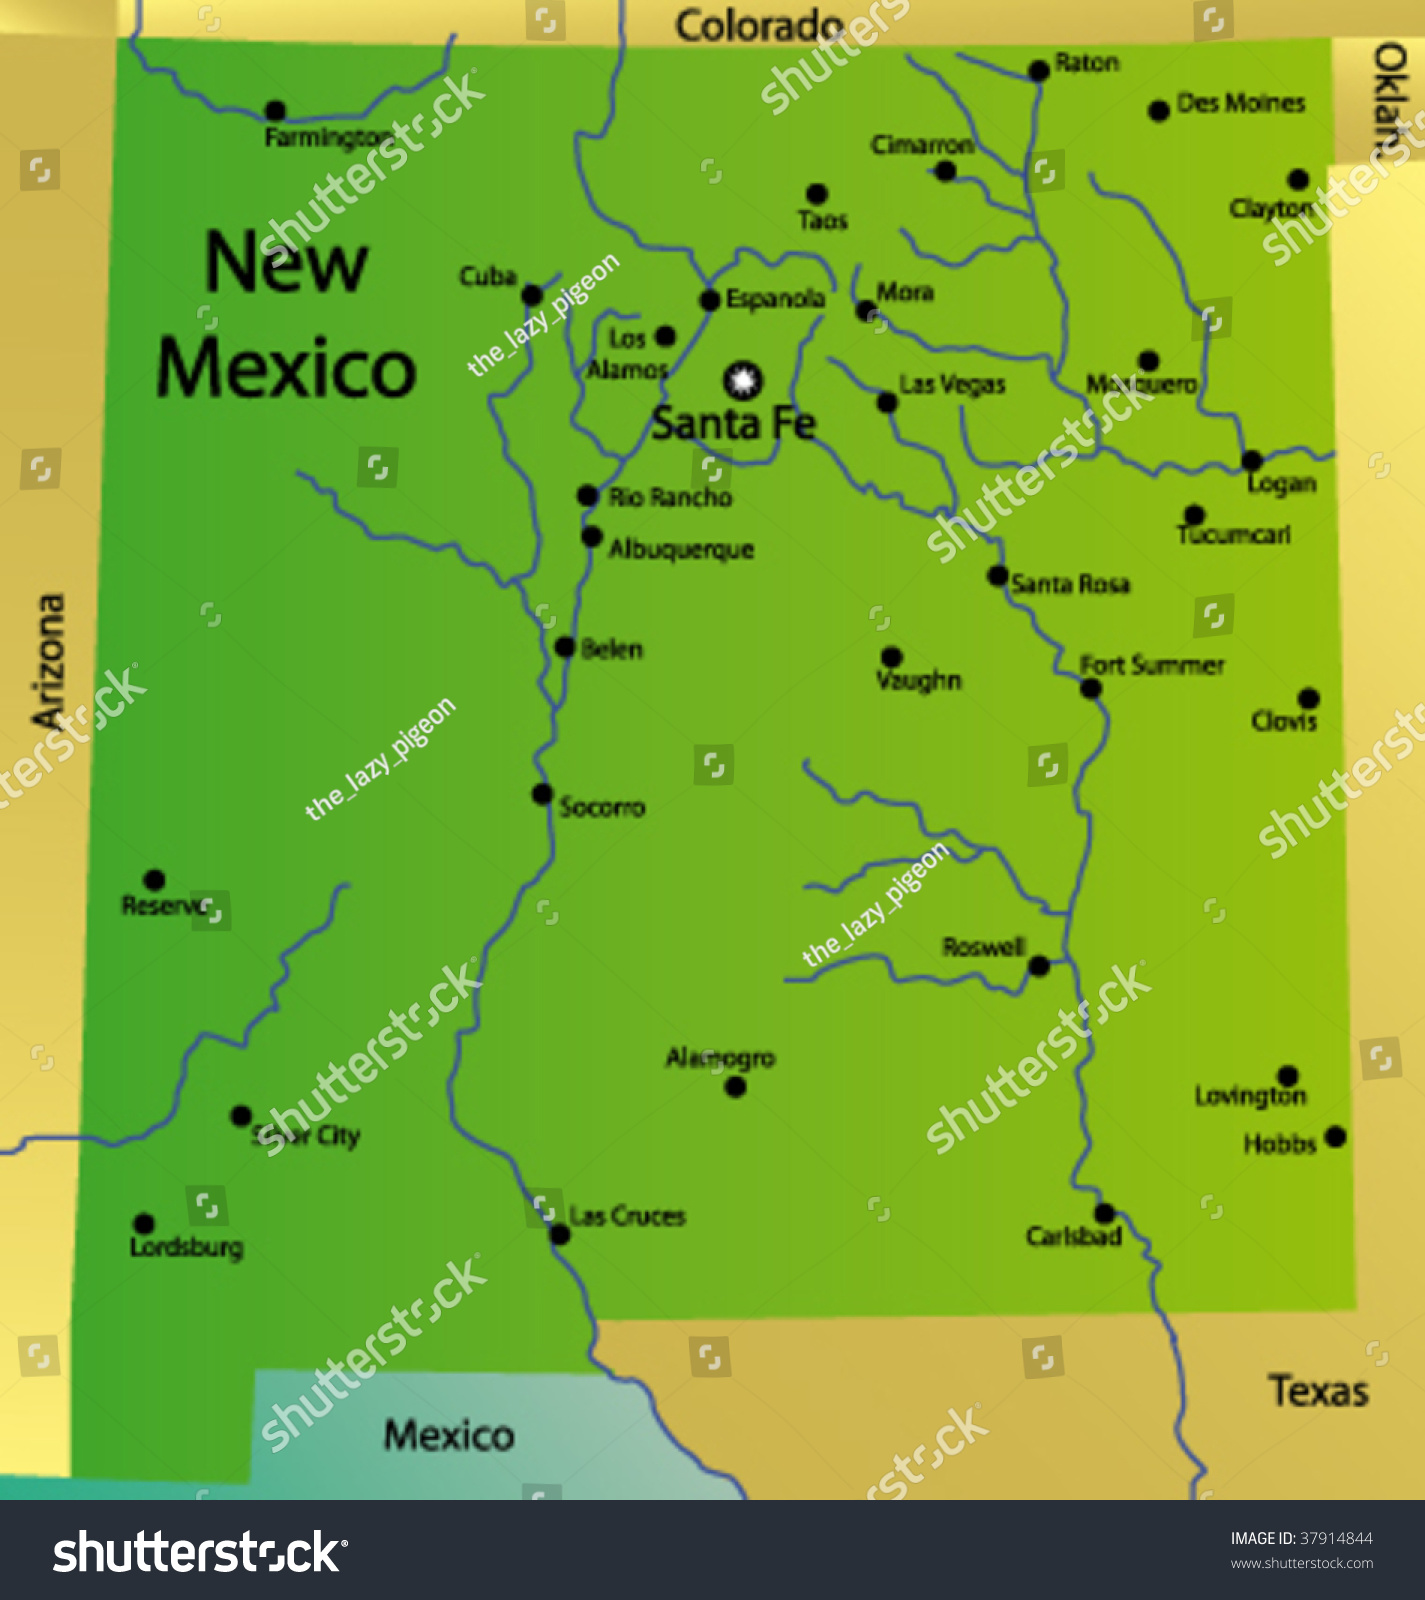 Detailed Vector Map New Mexico State Stock Vector 37914844